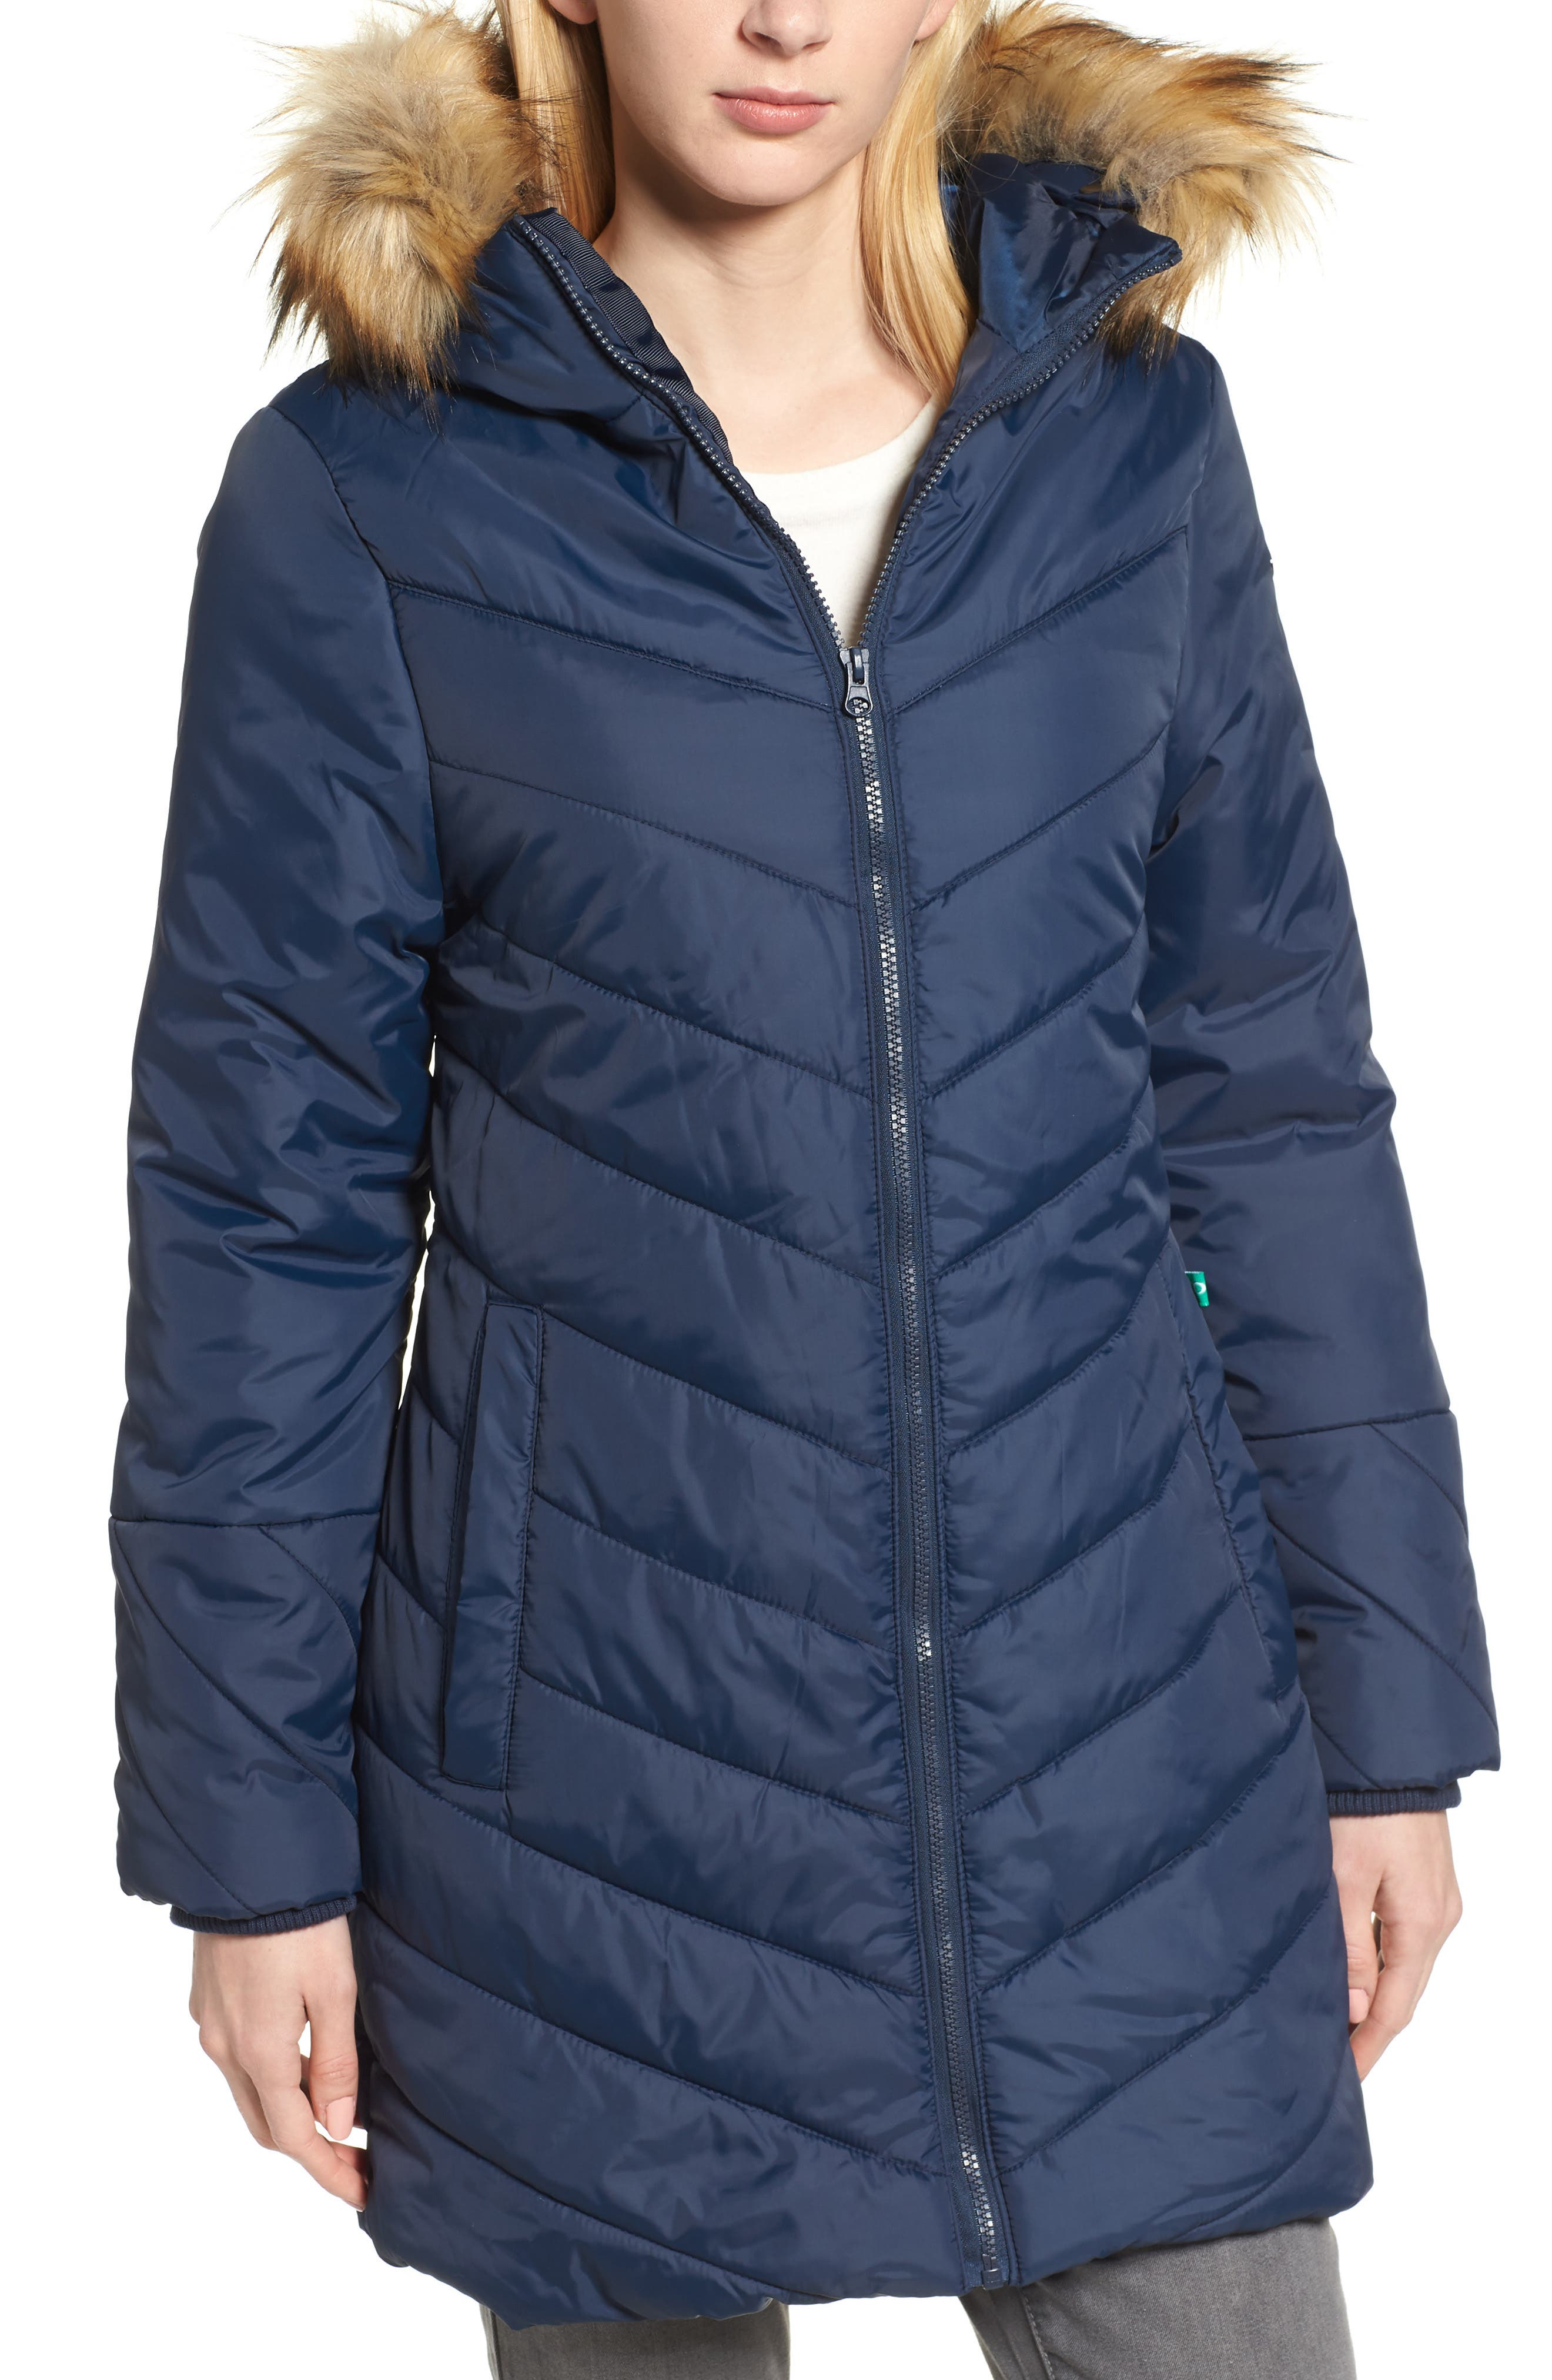 Faux Fur Trim Convertible Puffer 3-in-1 Maternity Jacket,                             Alternate thumbnail 2, color,                             Navy